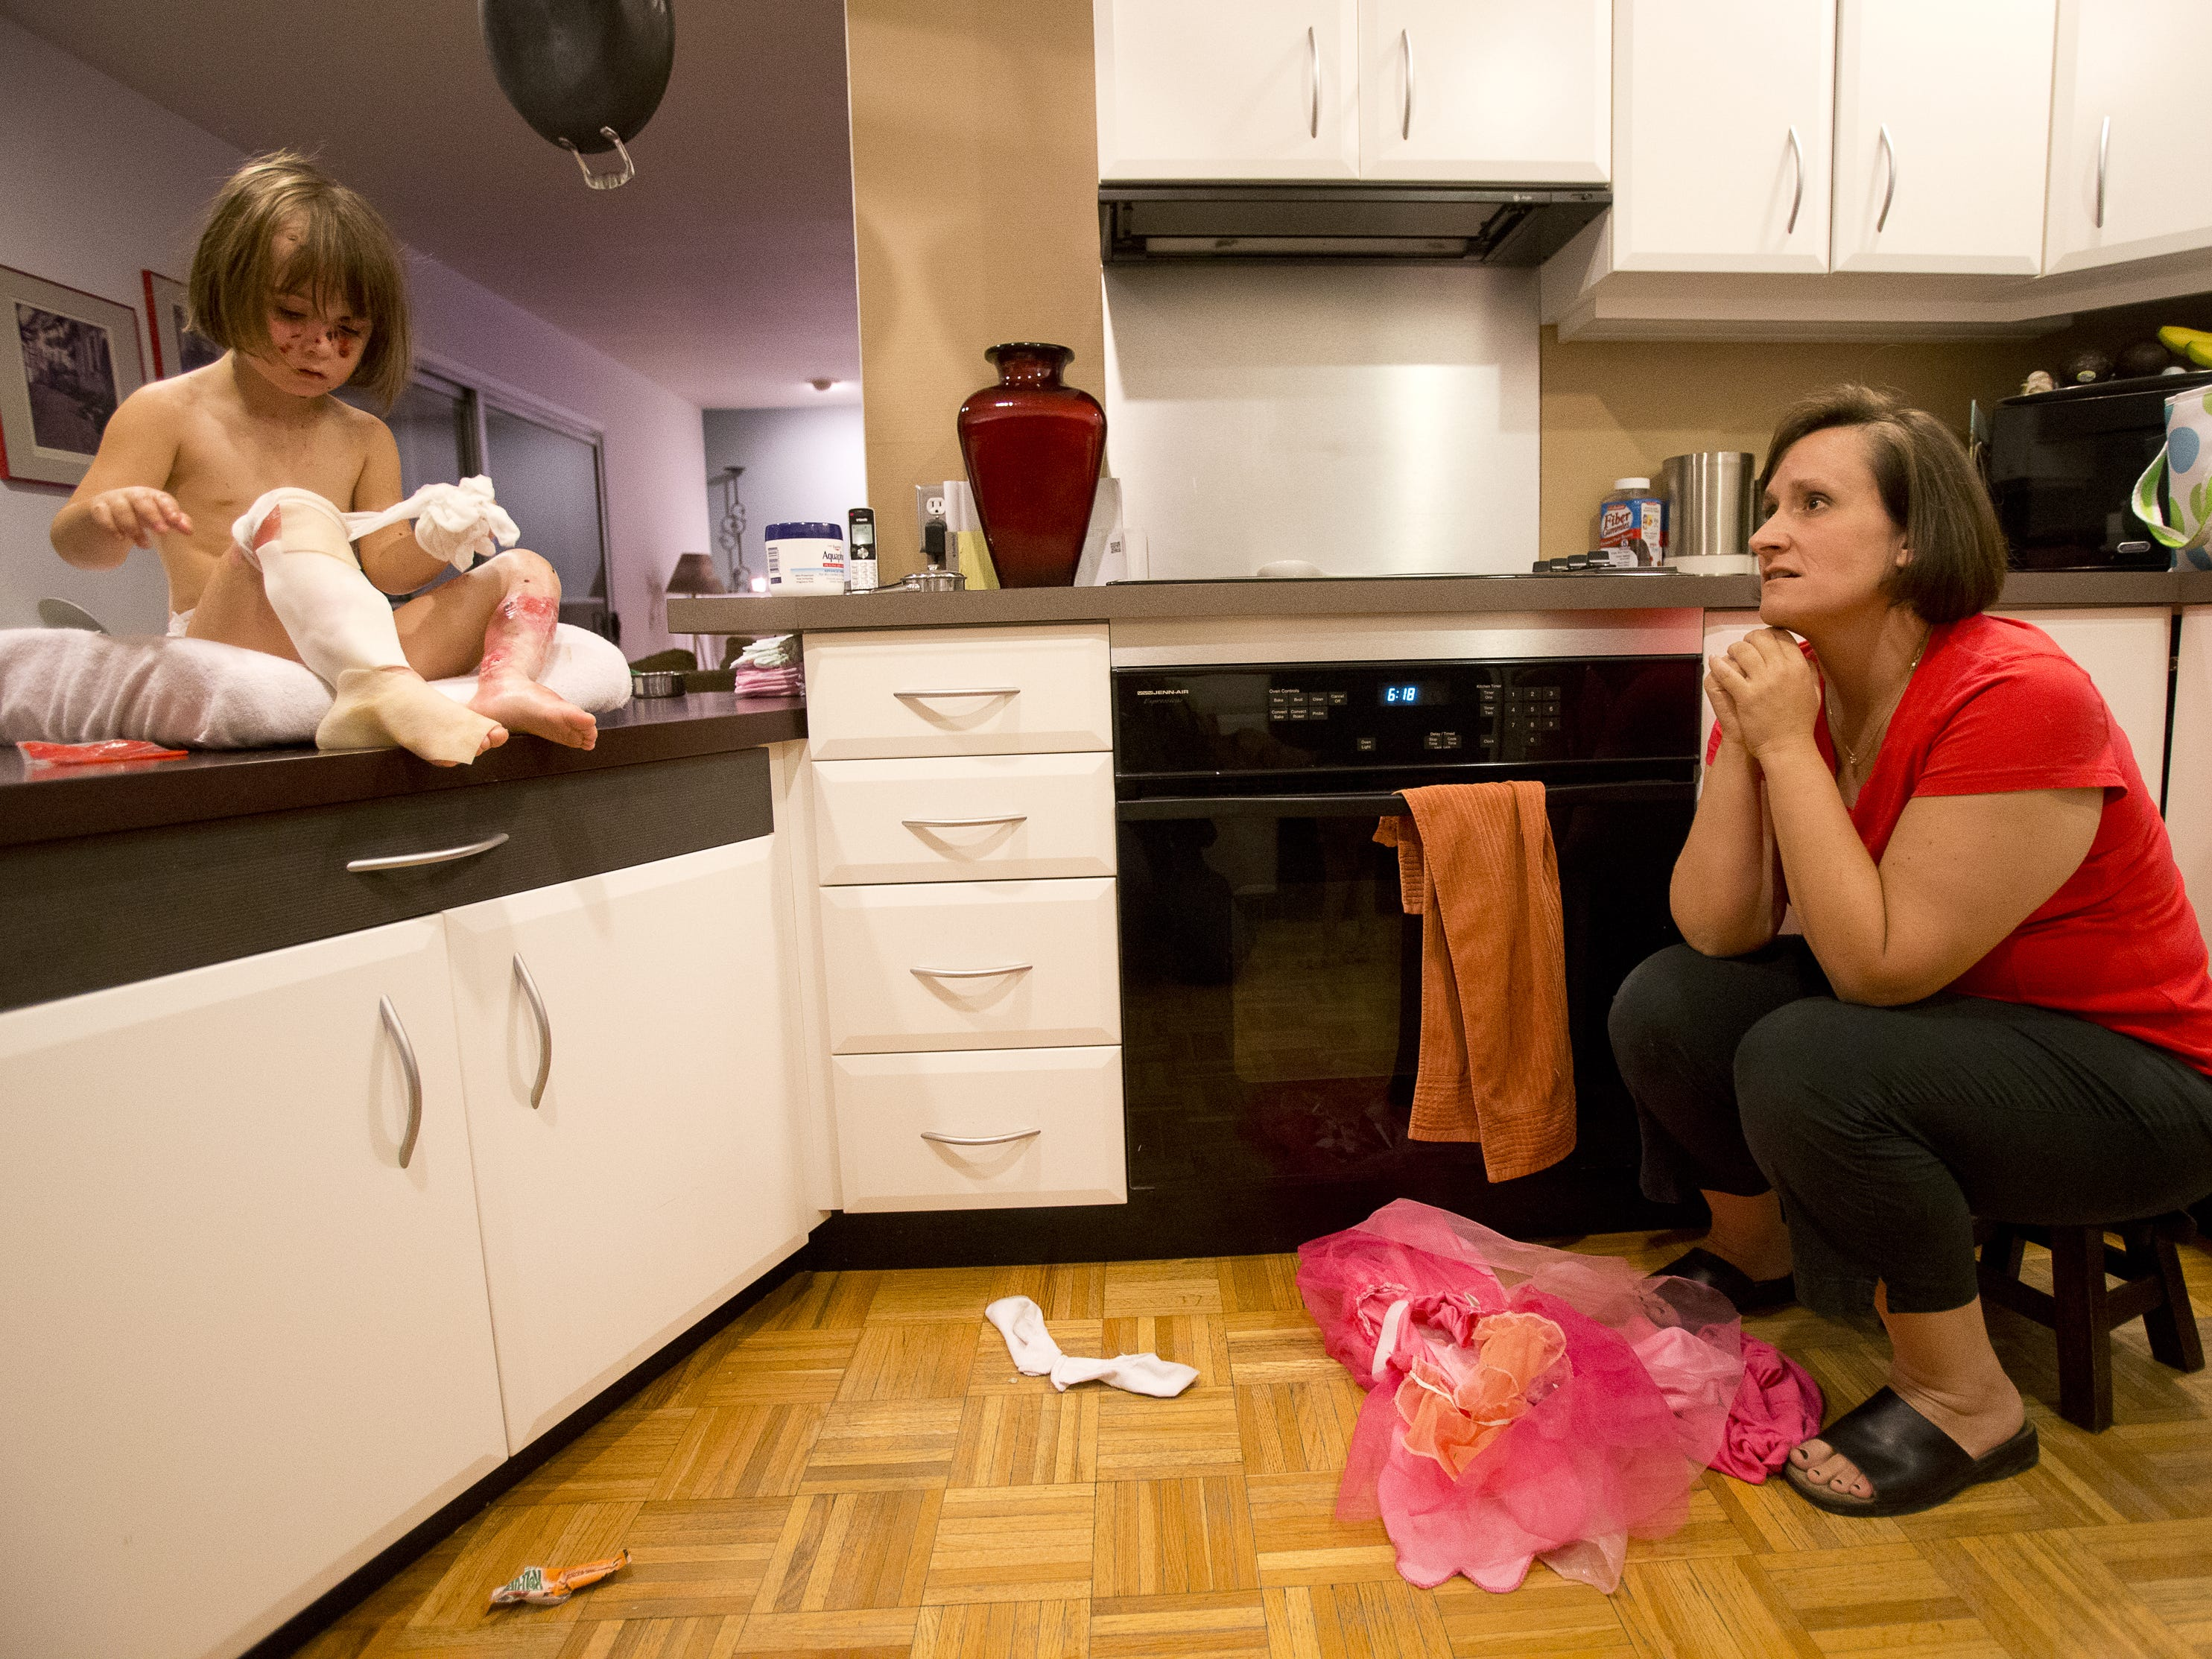 Lizzy Hendrickson removes bandages from her legs in this 2013 photo as her mom, Kristin, watches. Lizzy has a form of epidermolysis bullosa, which makes her skin extremely fragile.